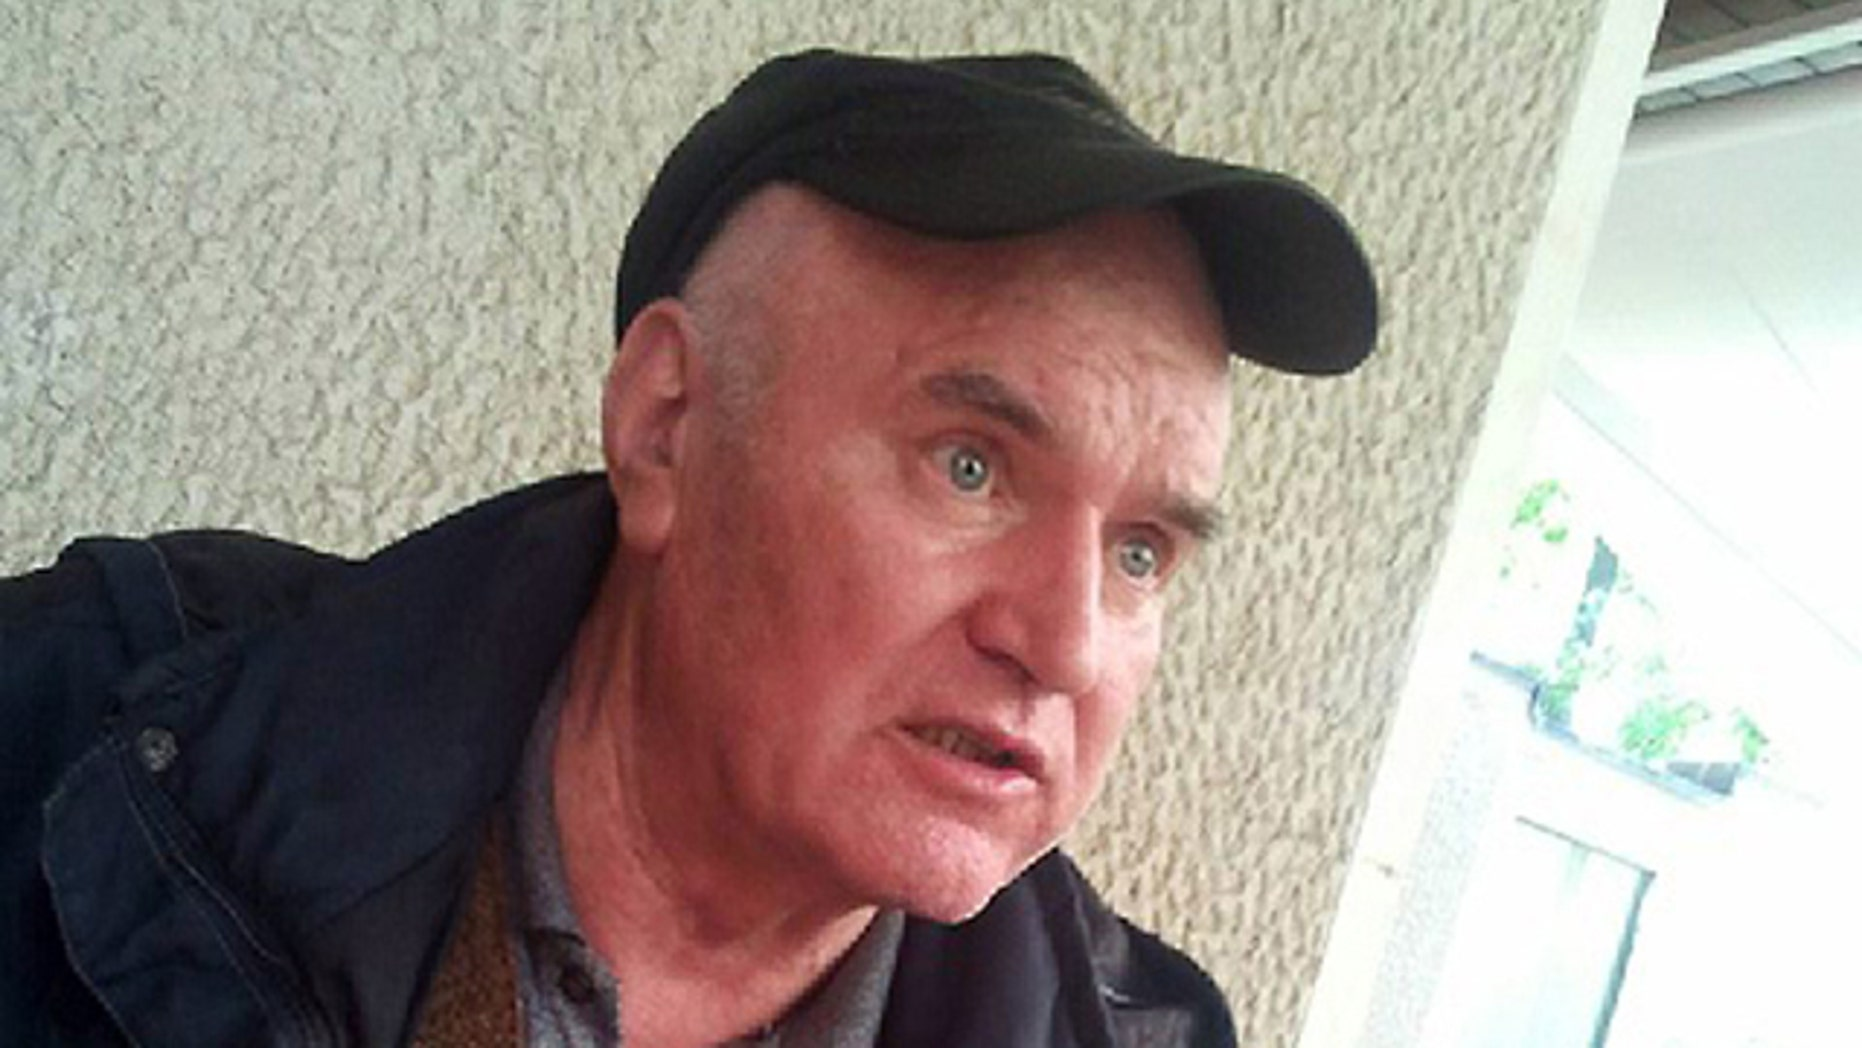 In this photo provided by Press newspaper, the Bosnian Serb army commander Ratko Mladic is seen at an undisclosed location at an unknown time after his arrest in Serbia after years in hiding.